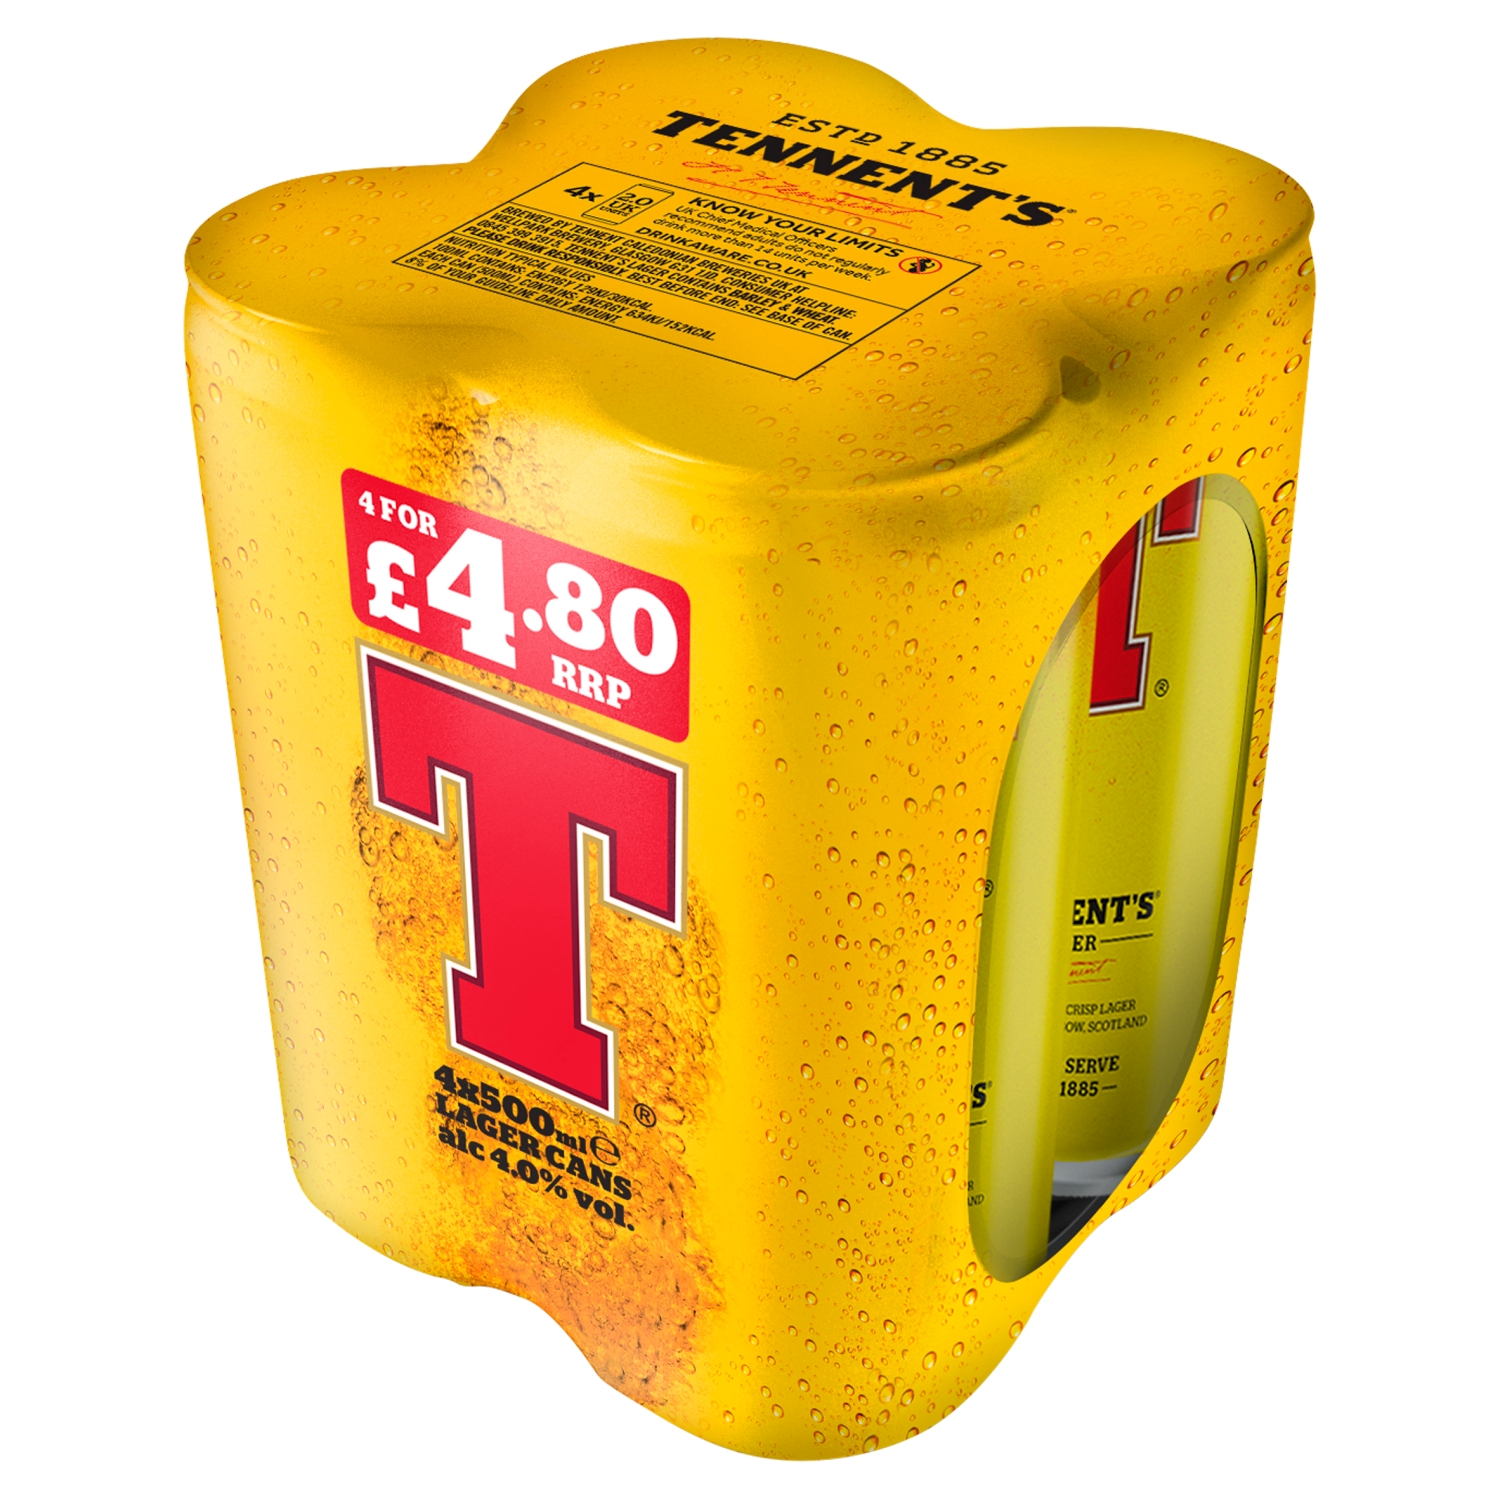 Tennent's Lager Beer 4 x 500ml